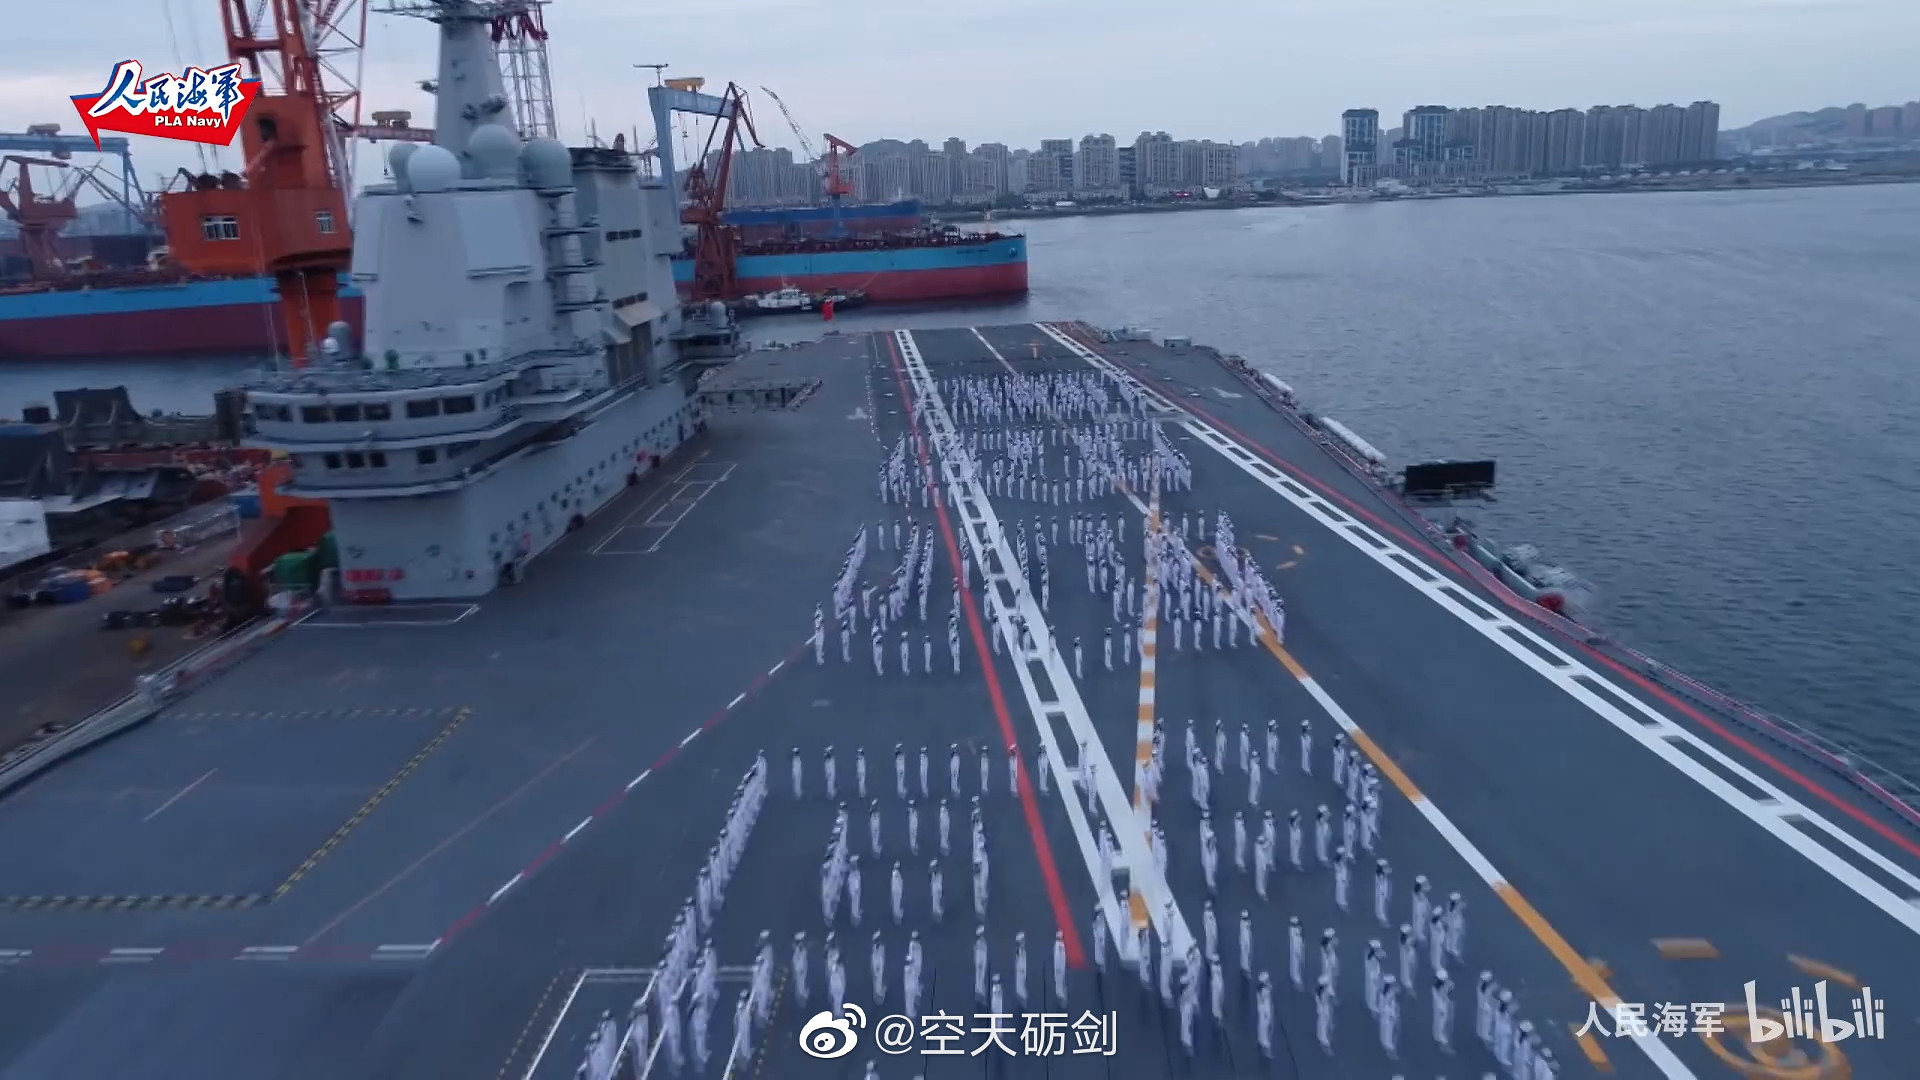 Chinese aircraft carrier program - Page 7 Shando10